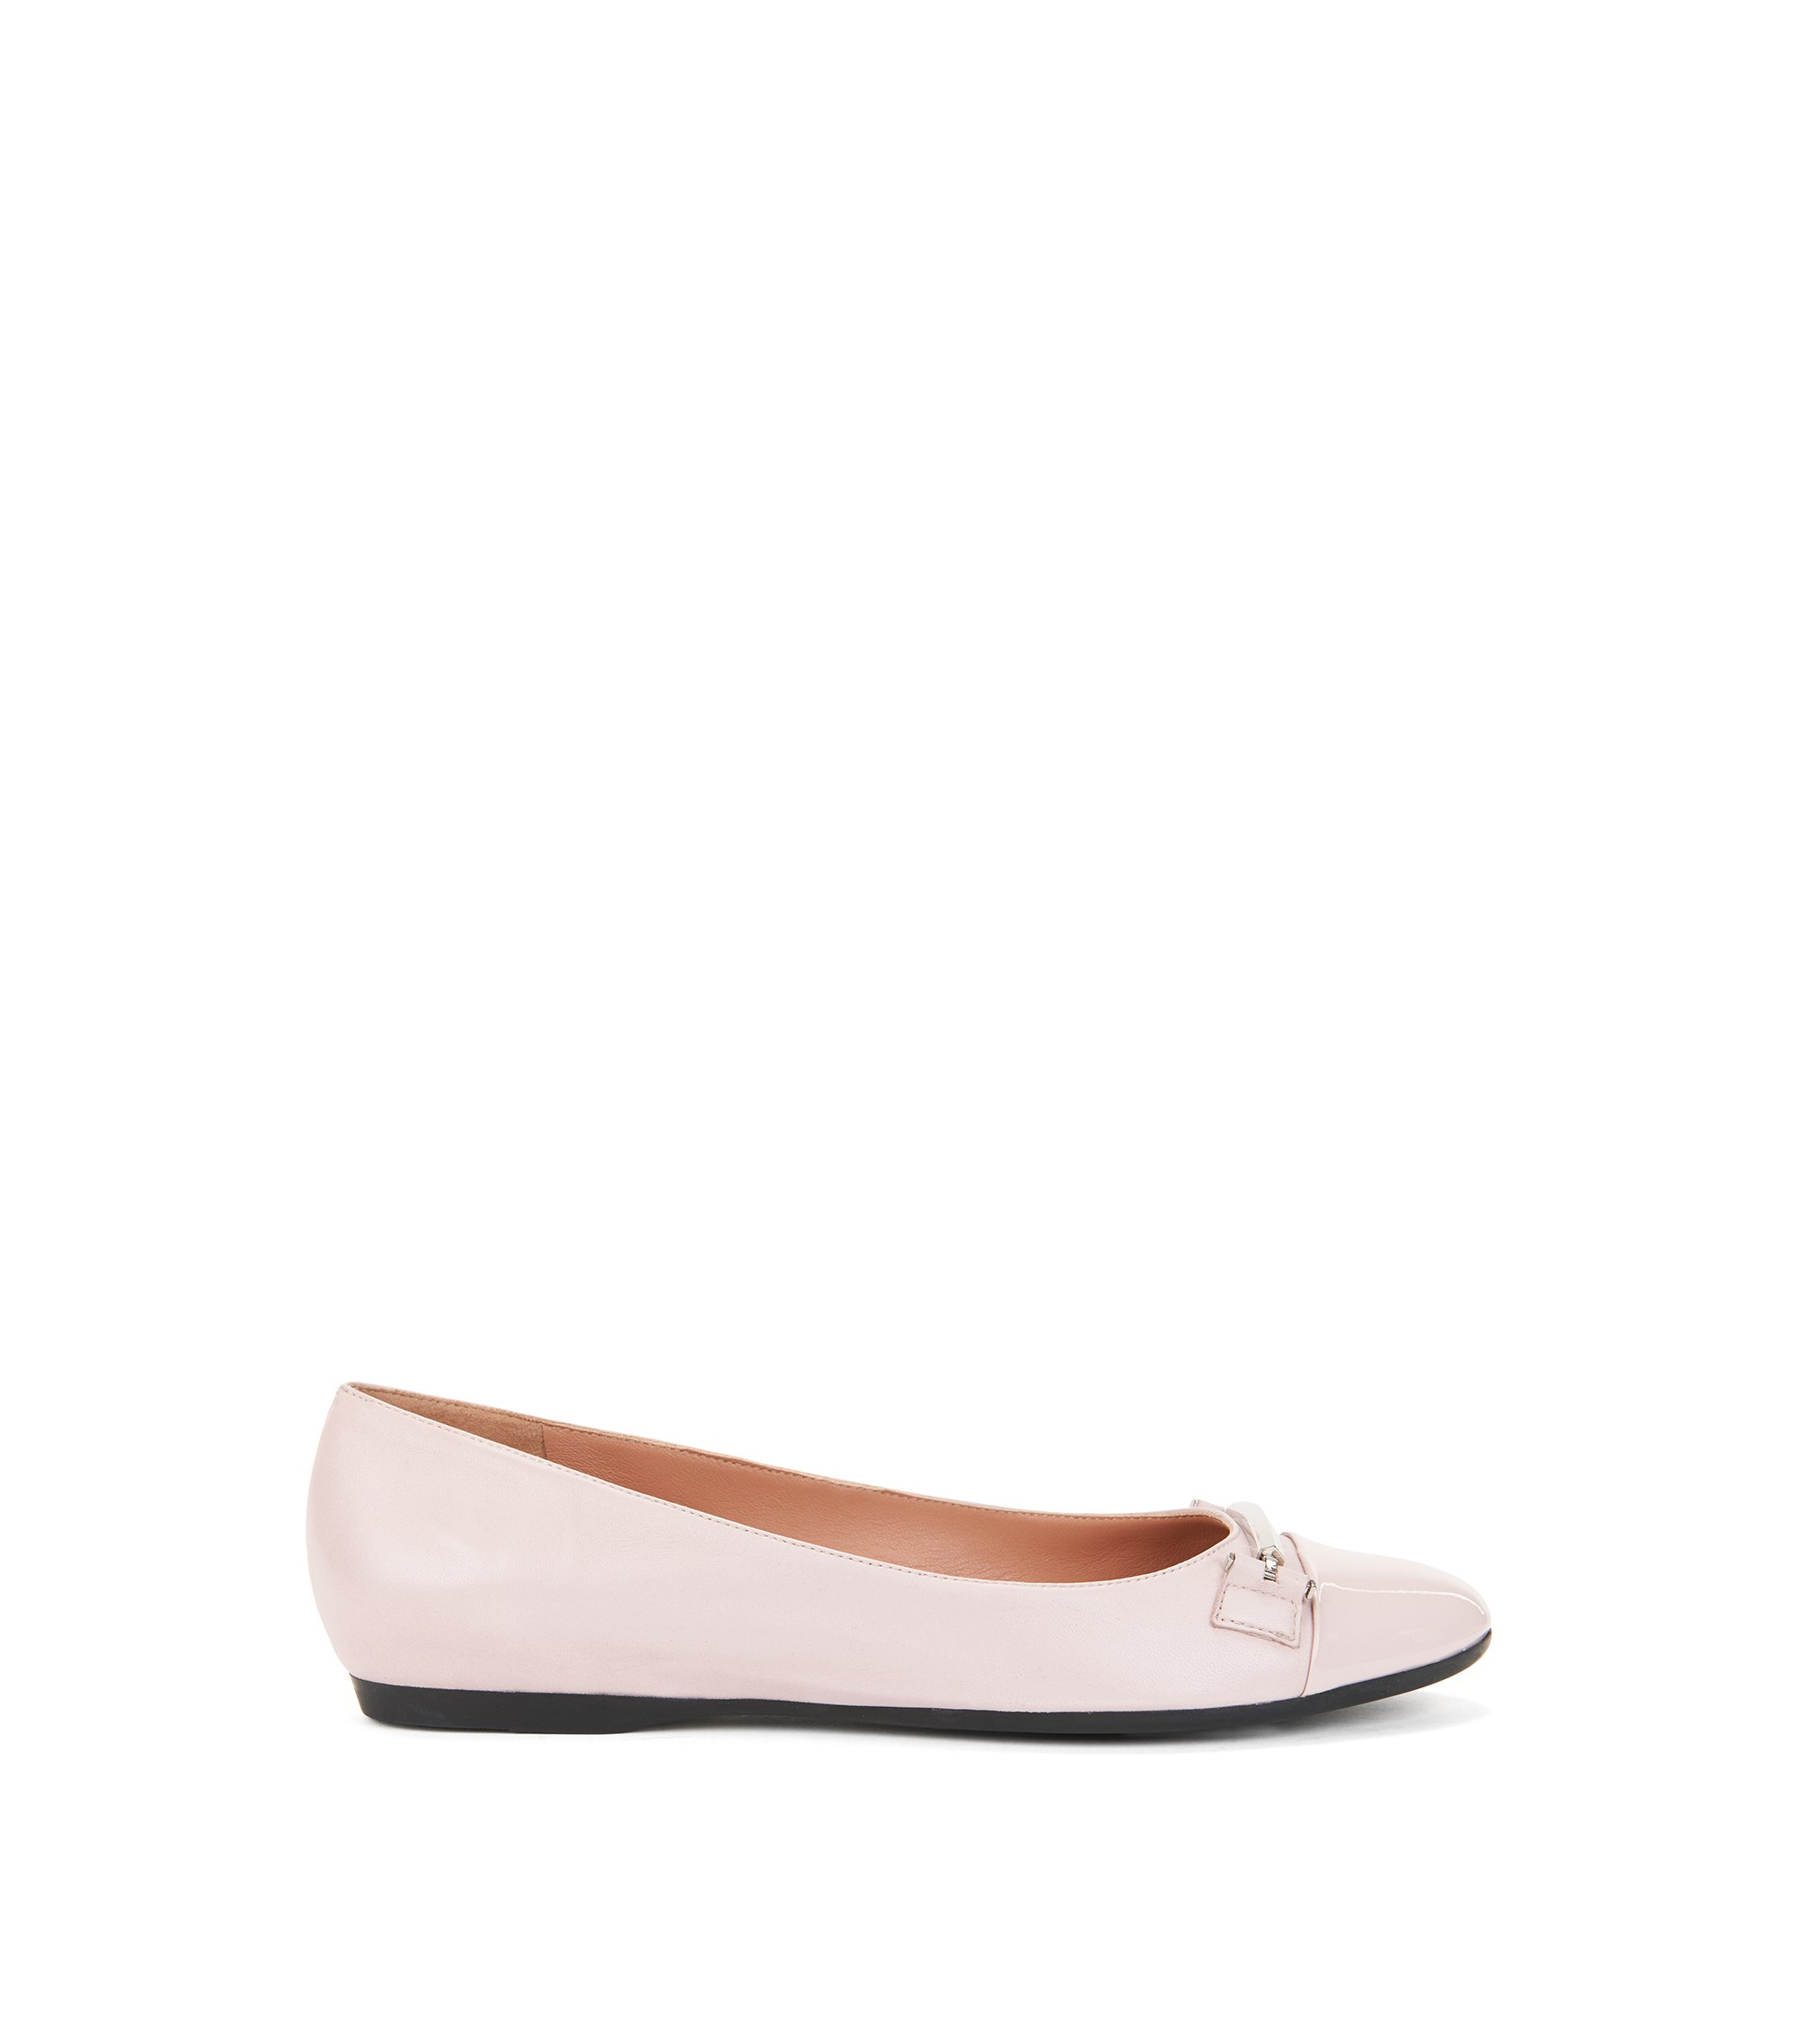 Sheepskin Horsebit Flat | Lara Ballerina, light pink